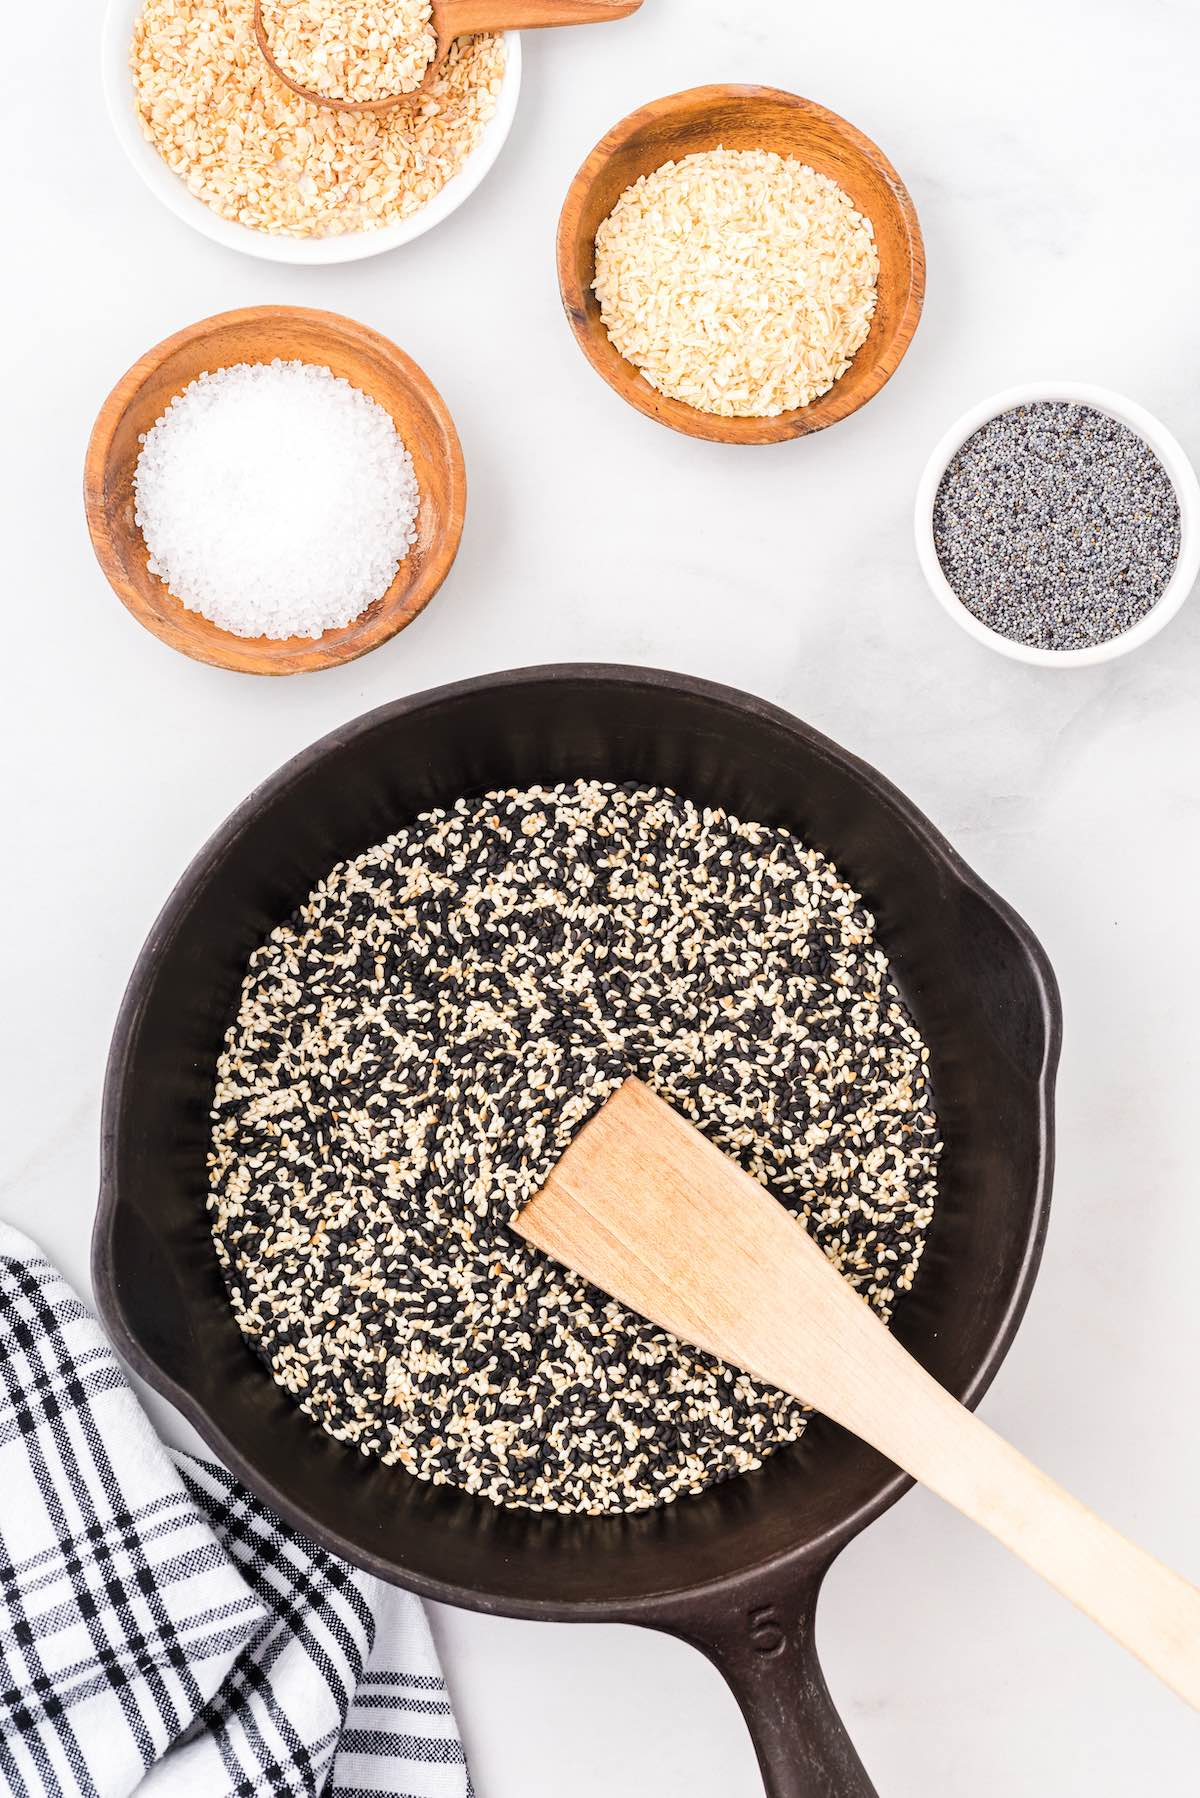 Toast the white and black sesame seeds